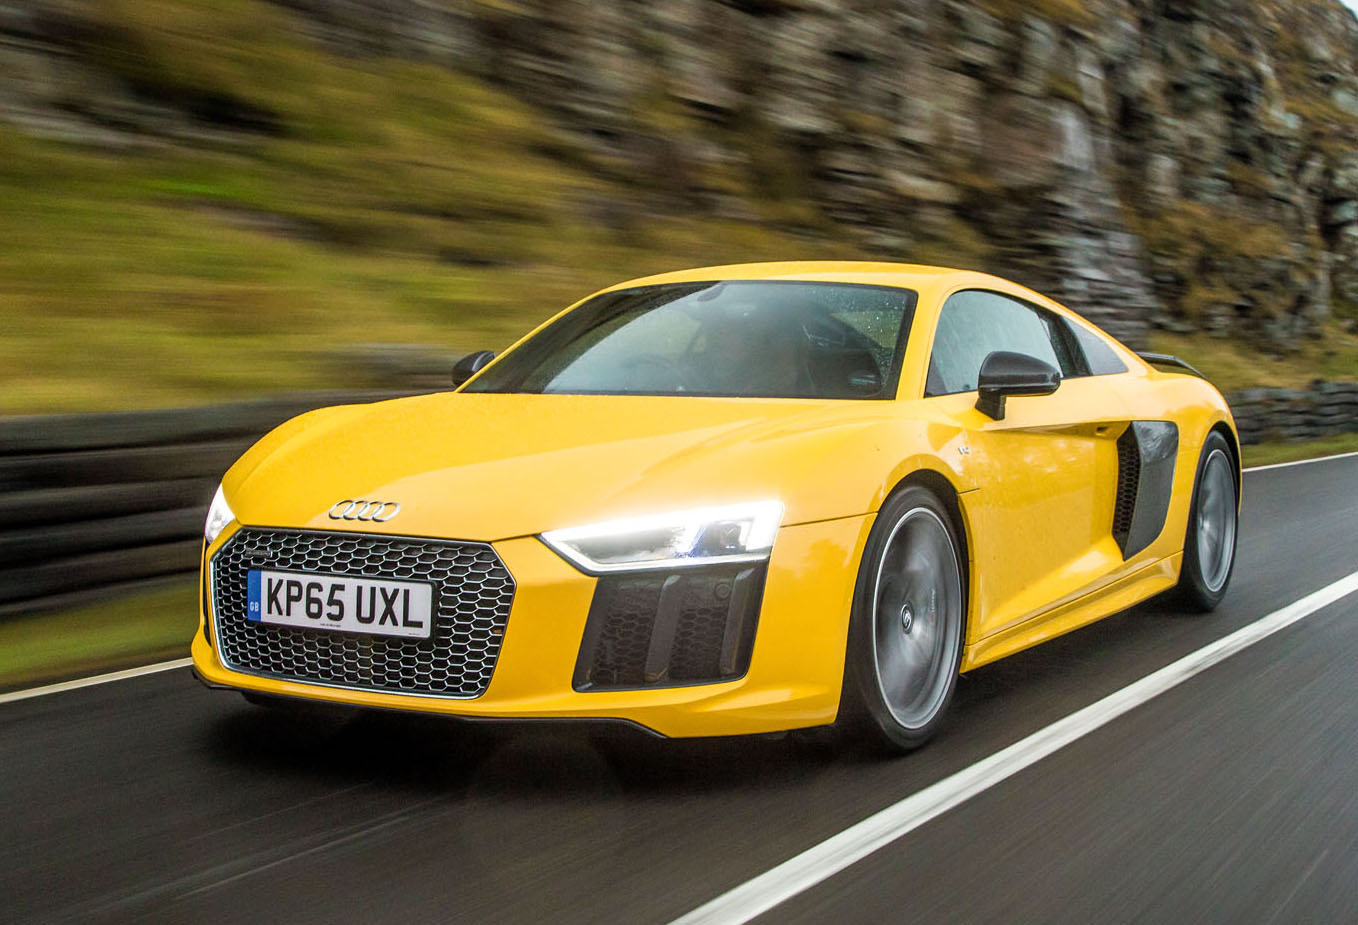 Audi forced to dramatically cut costs after selgate | Autocar